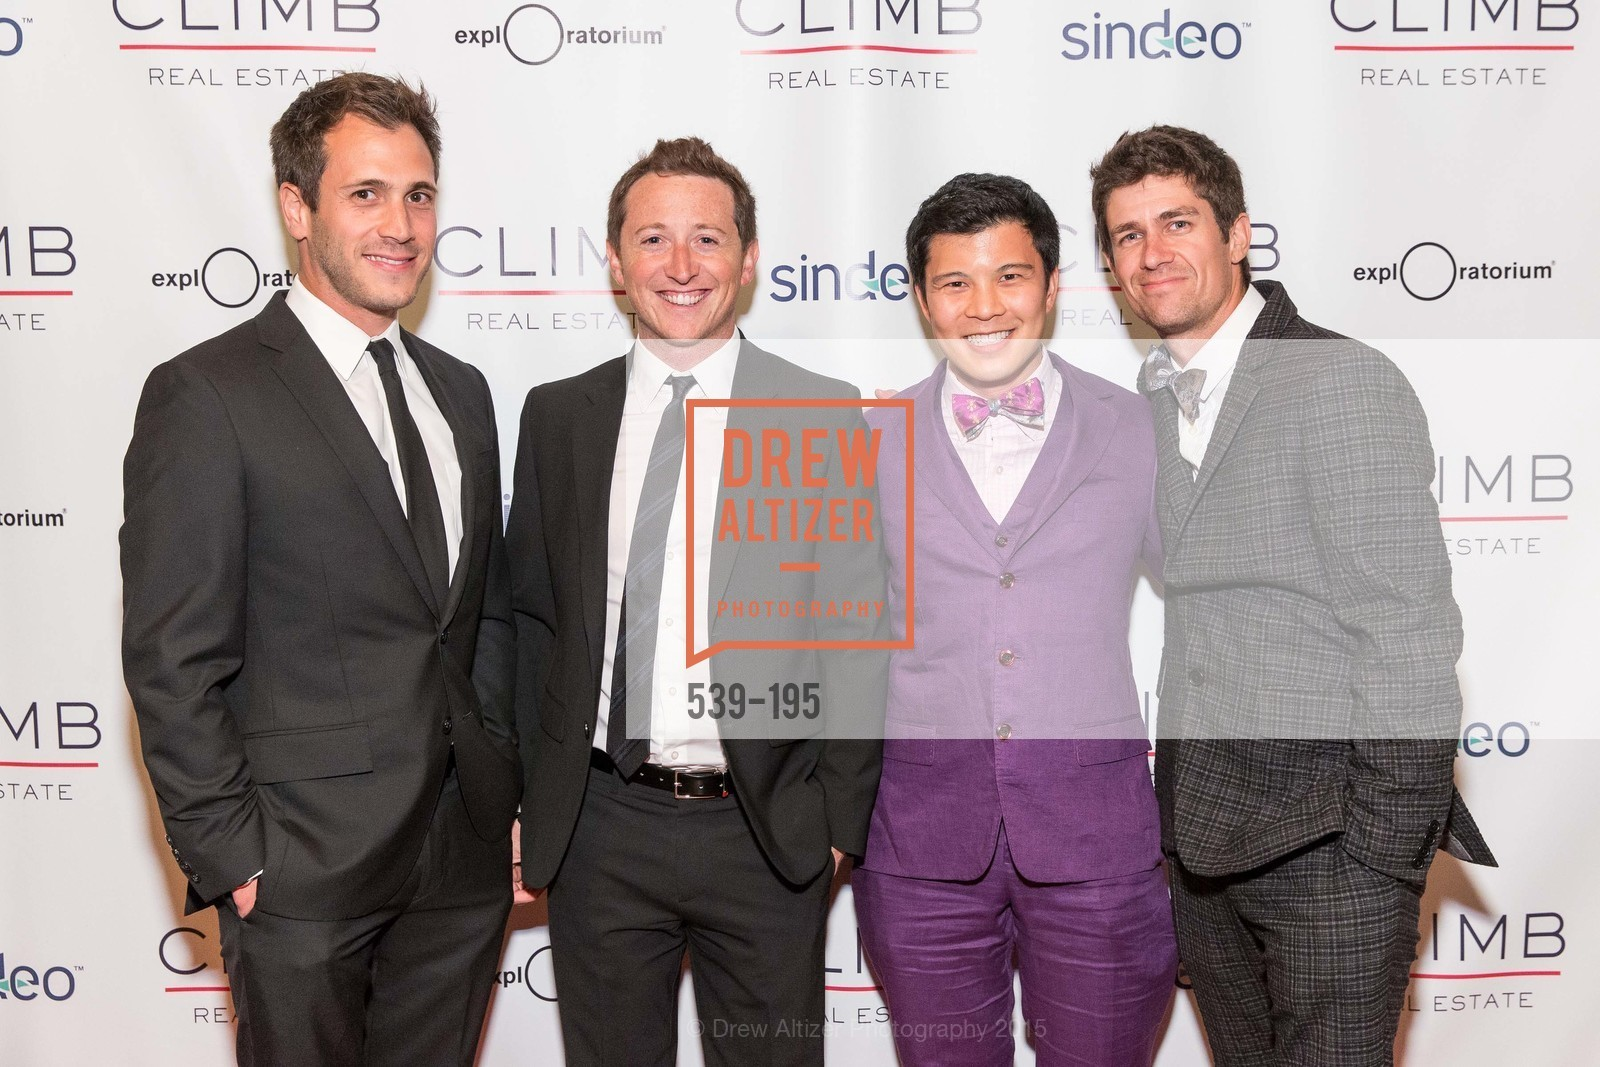 David Stark, Stephen Haskell, Tony Pham, Brian Shaier, Climb Real Estate and Sindeo Celebrate the Launch of Million Dollar Listing San Francisco, Local Edition San Francisco. 691 Market St, July 8th, 2015,Drew Altizer, Drew Altizer Photography, full-service agency, private events, San Francisco photographer, photographer california